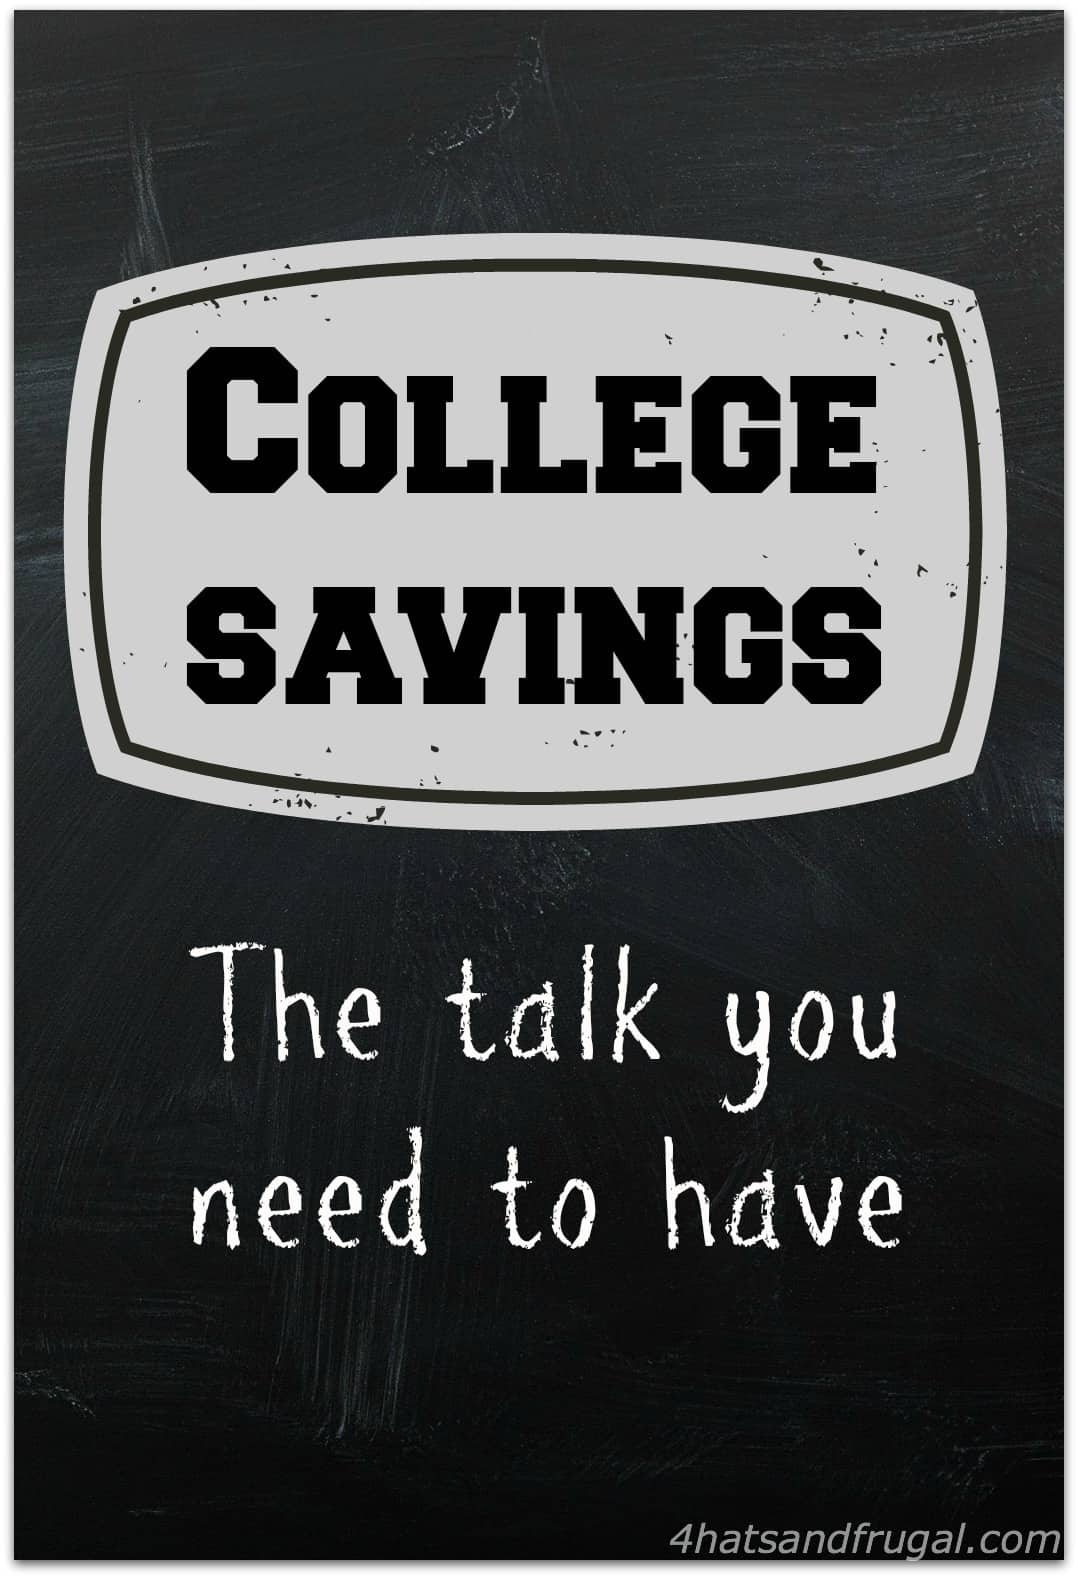 college savings - the talk you need to have